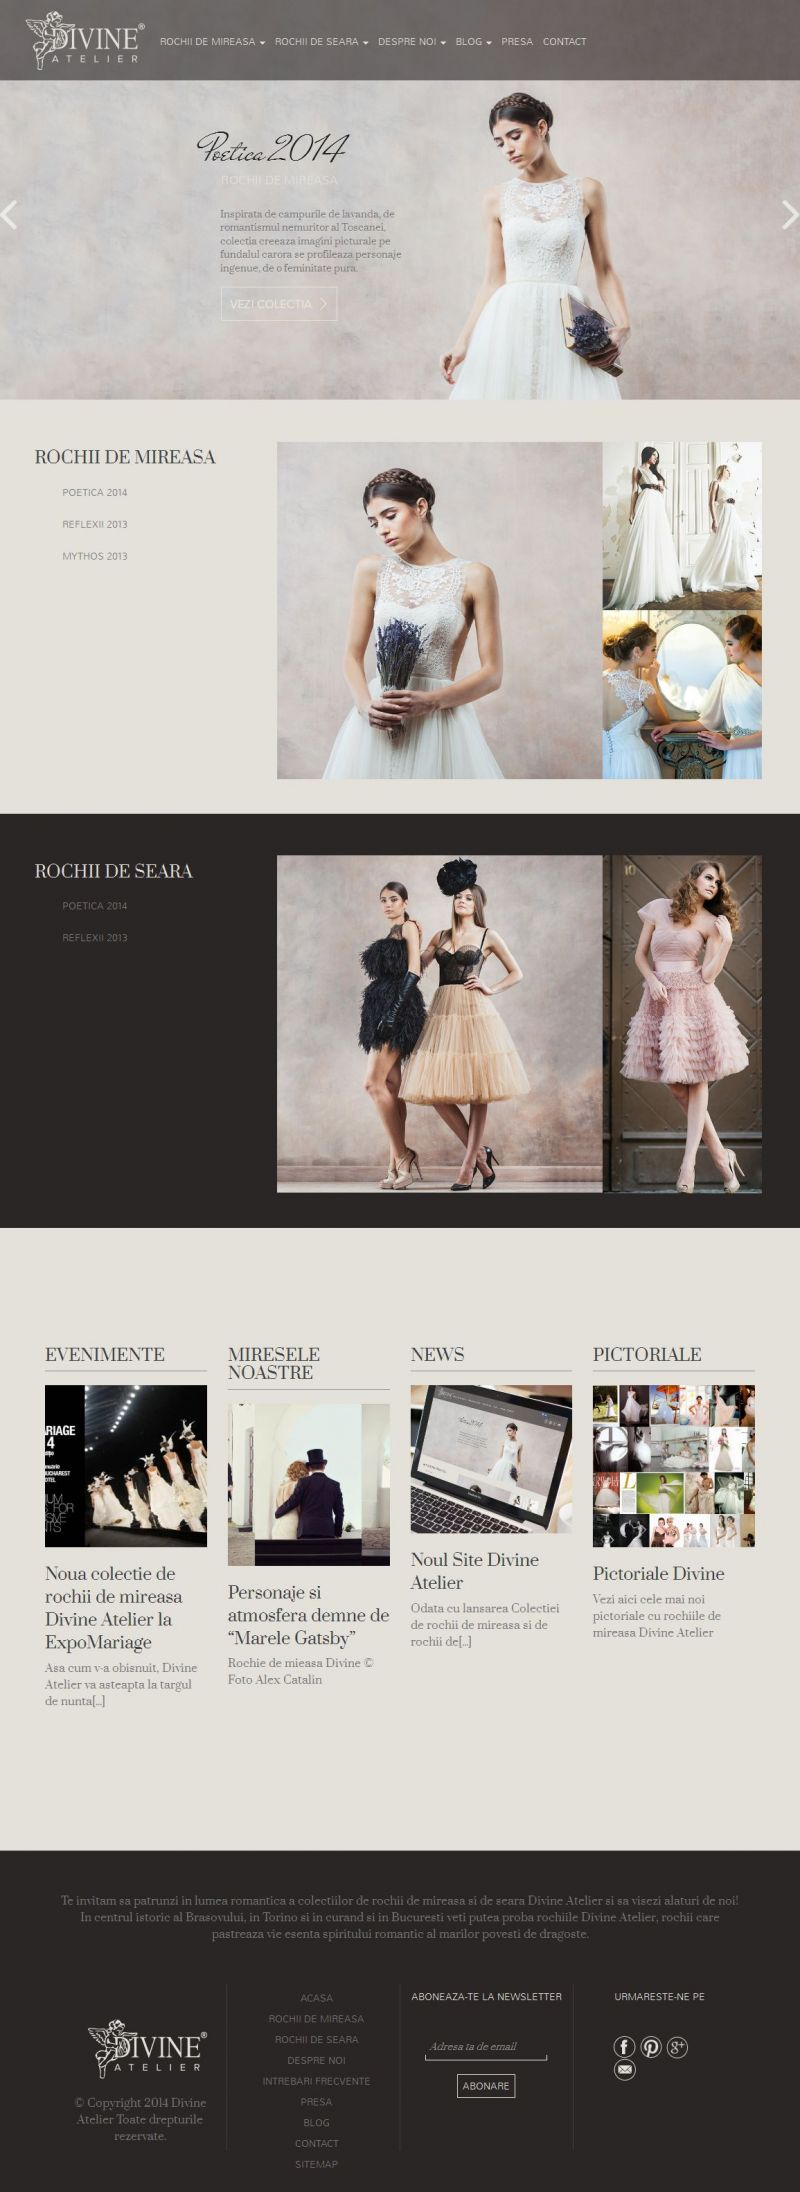 Divine.ro are un nou look. Intra sa vezi noul website!